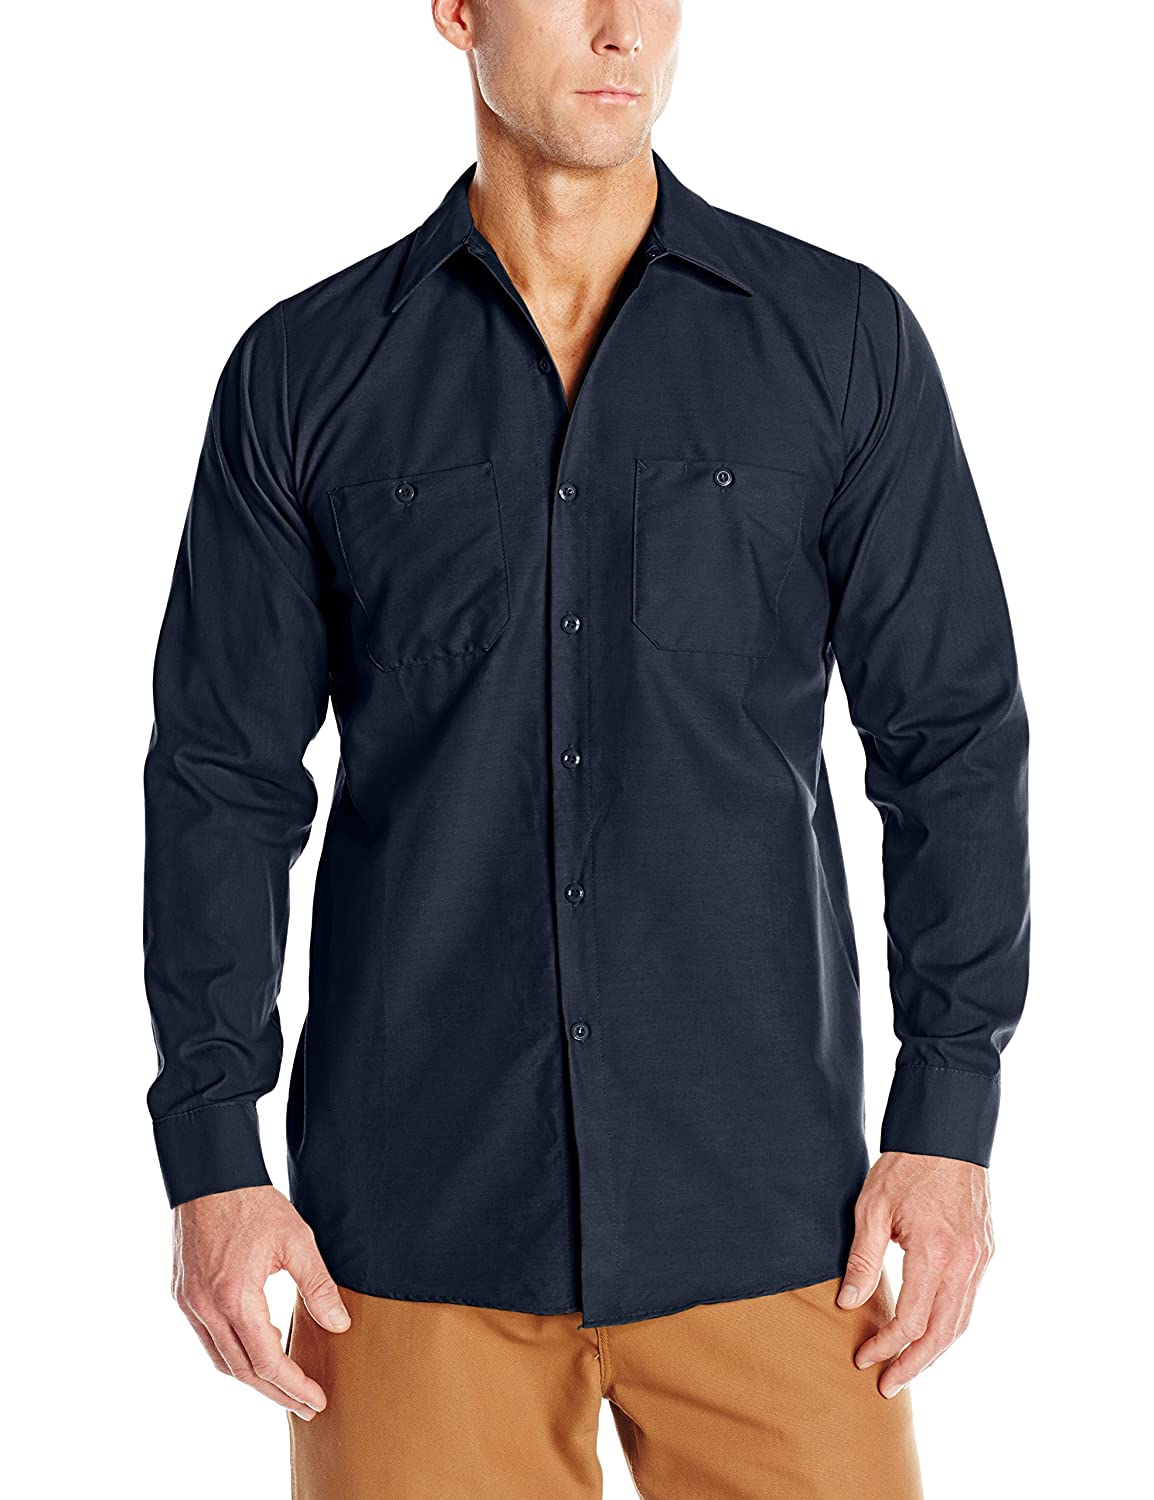 Long Sleeve Work Shirts For Hot Weather T Shirts Design